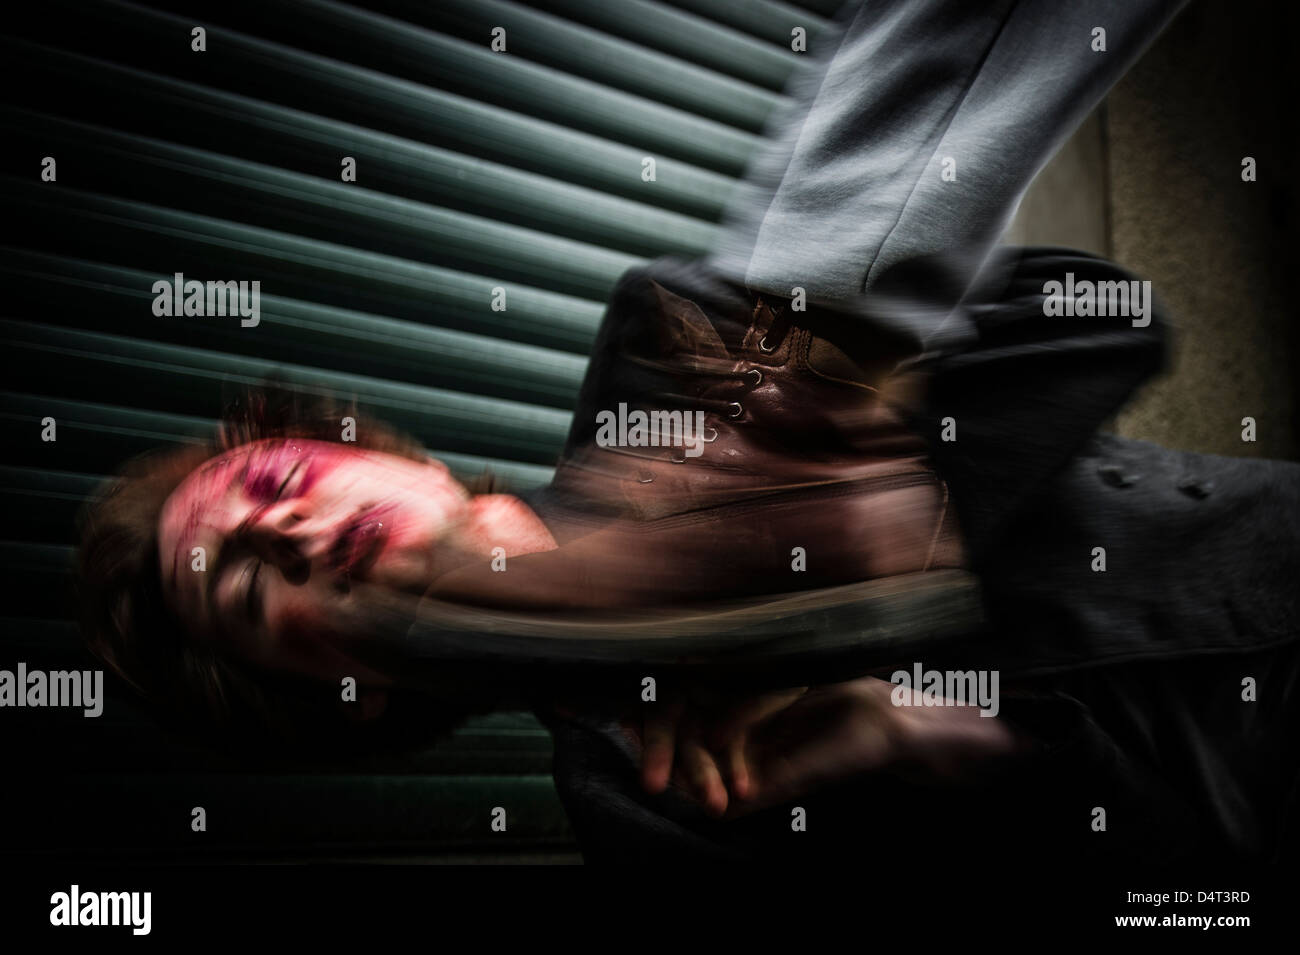 A man being attacked, beaten, savagely kicked in the head, UK , homophobic attack assault - Stock Image